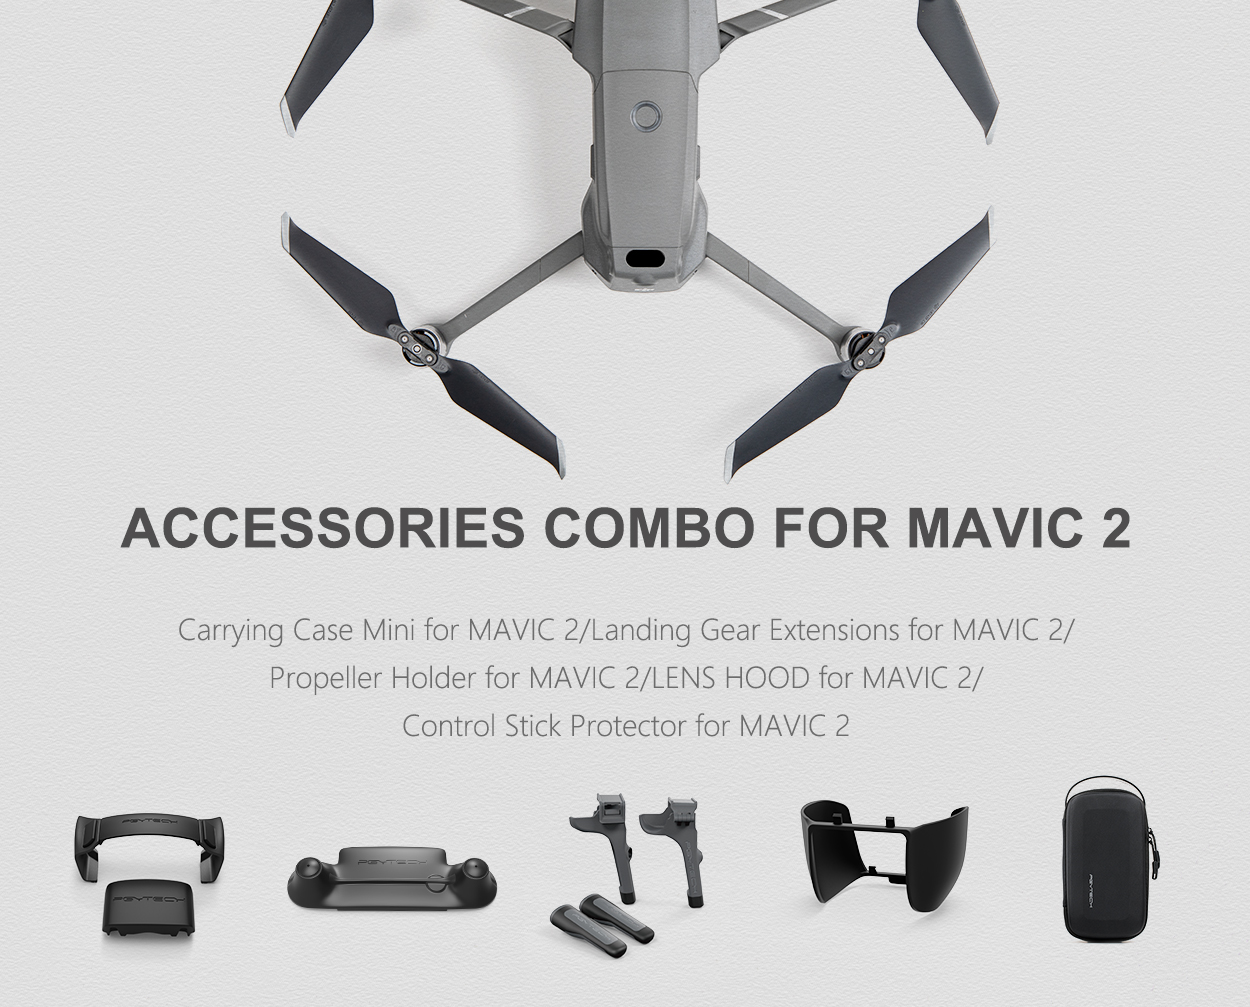 accessories combo for mavic 2 - Carrying Case Mini for MAVIC 2/Landing Gear Extensions for MAVIC 2/ Propeller Holder for MAVIC 2/LENS HOOD for MAVIC 2/ Control Stick Protector for MAVIC 2